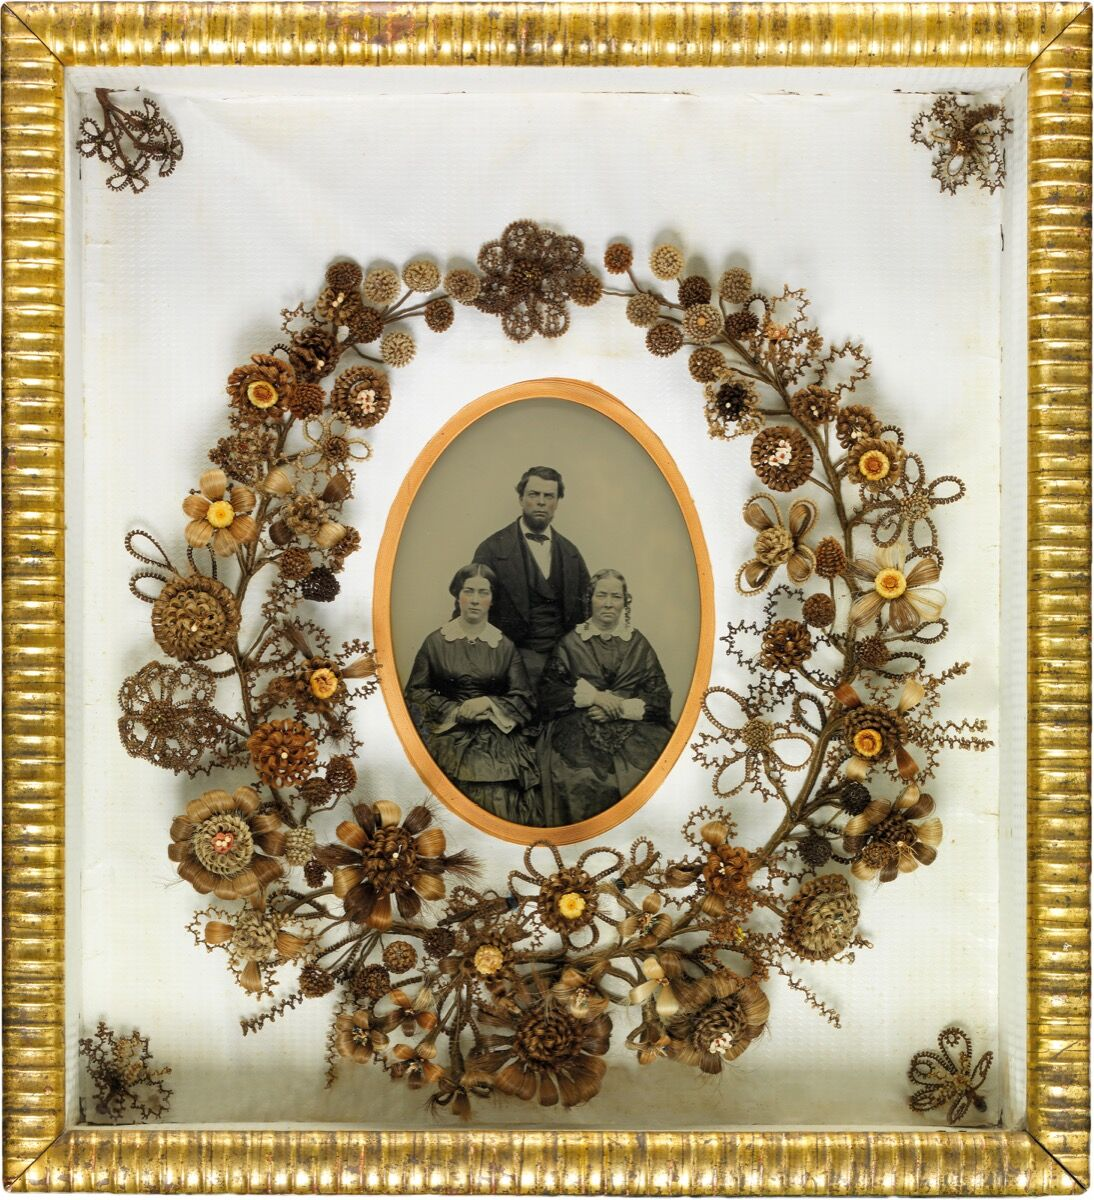 The Curious Victorian Tradition Of Making Art From Human Hair Artsy